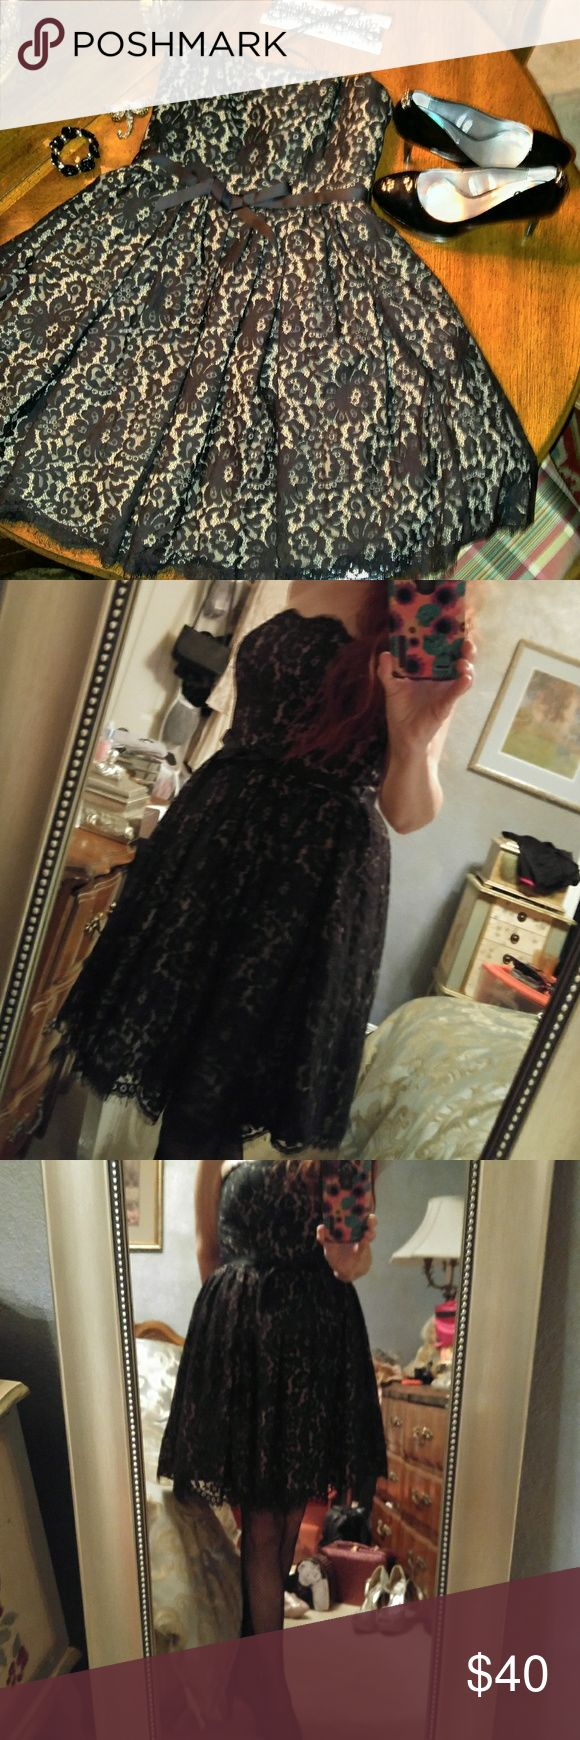 """Gorgeous Lace Strapless Evening Dress Sz 10 NWOT Gorgeous Lace Strapless Evening Dress Sz 10 brand: Liberated & Free Genuine Denim Company extremely well made.   No stretch.   Measurements laying flat armpit : 17"""" waist: 15: 4 layered skirt. Liberated & Free Denim Co. Dresses"""